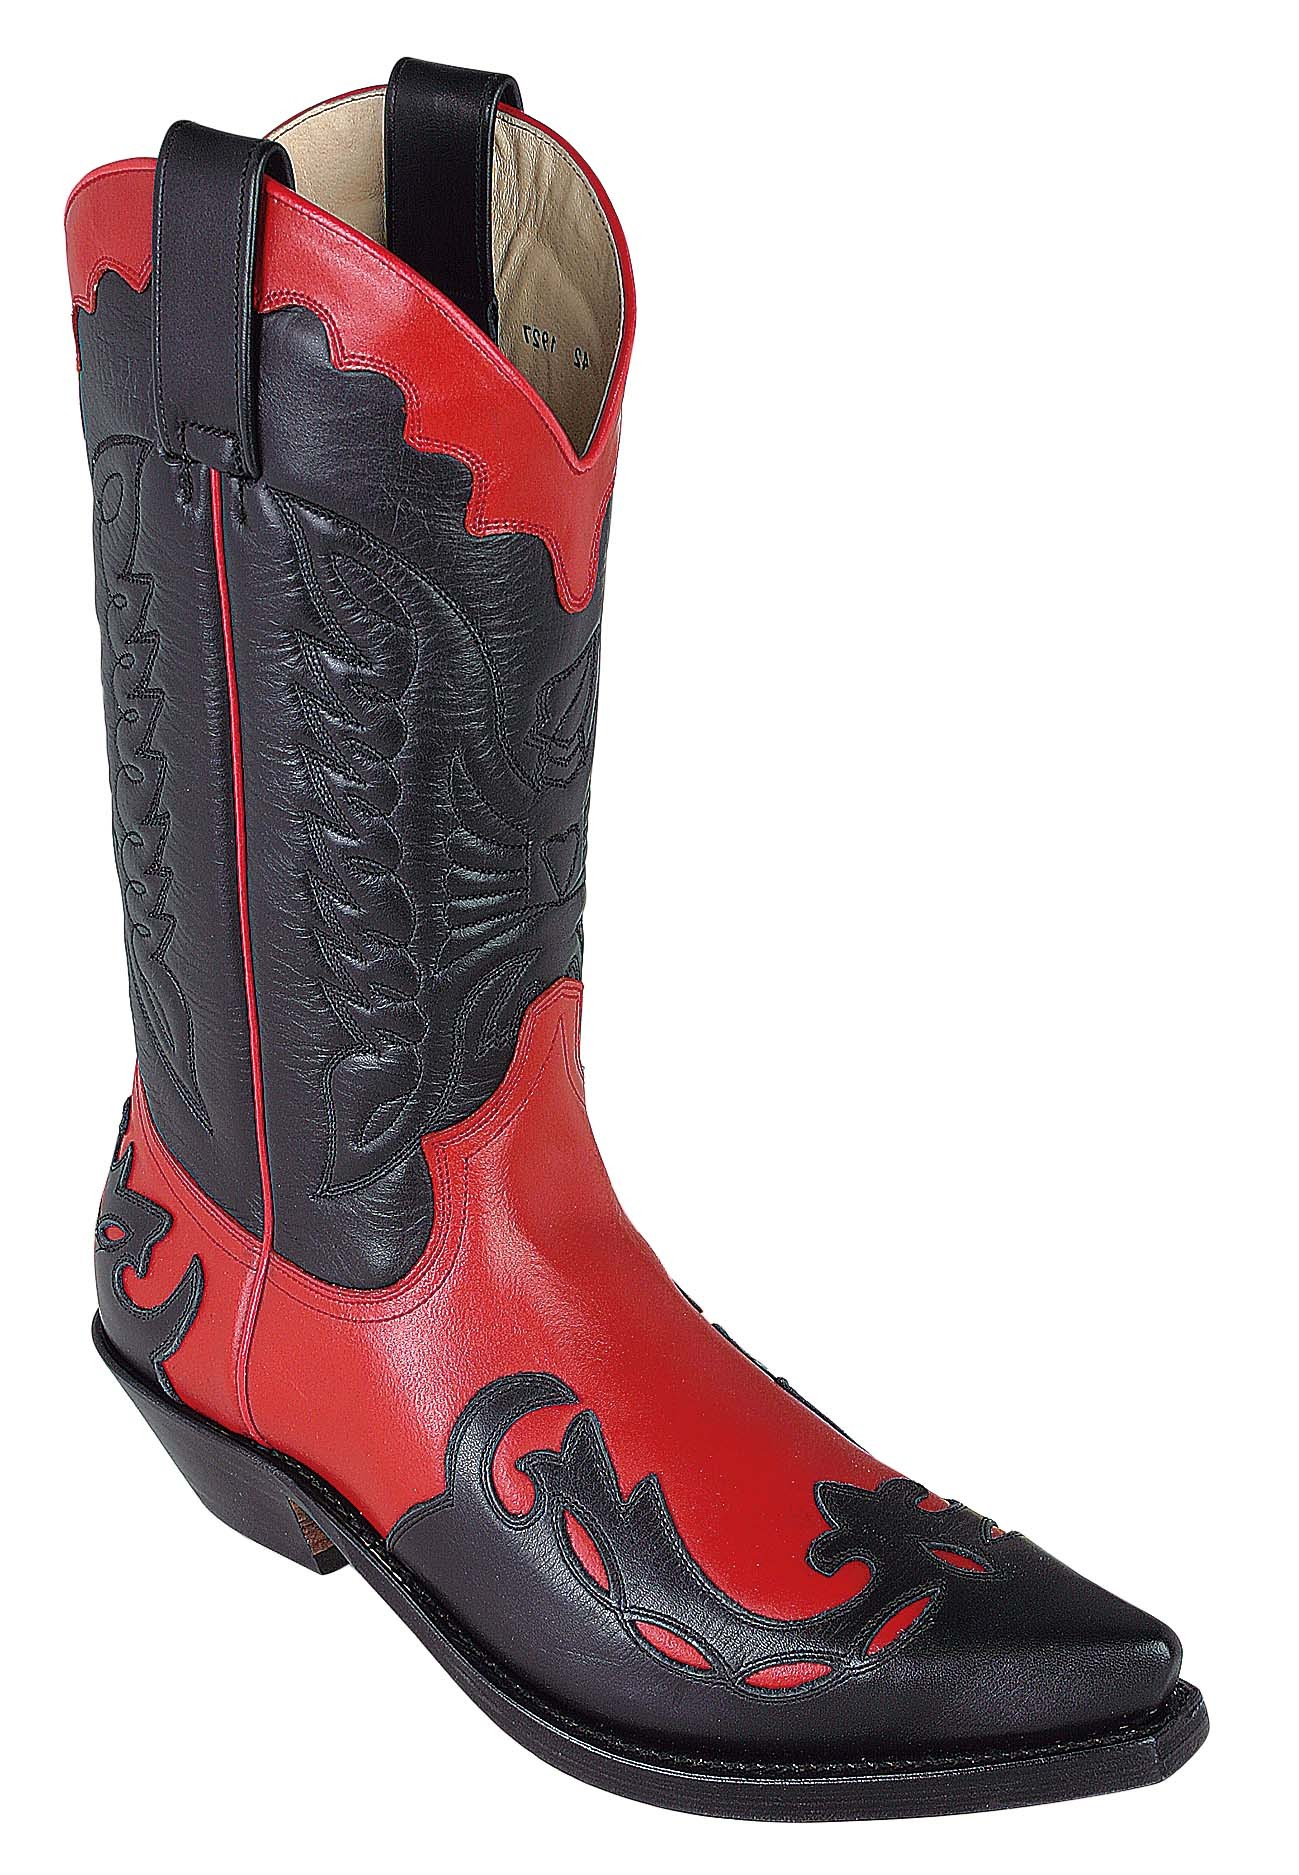 Red And Black Cowboy Boots - Cr Boot